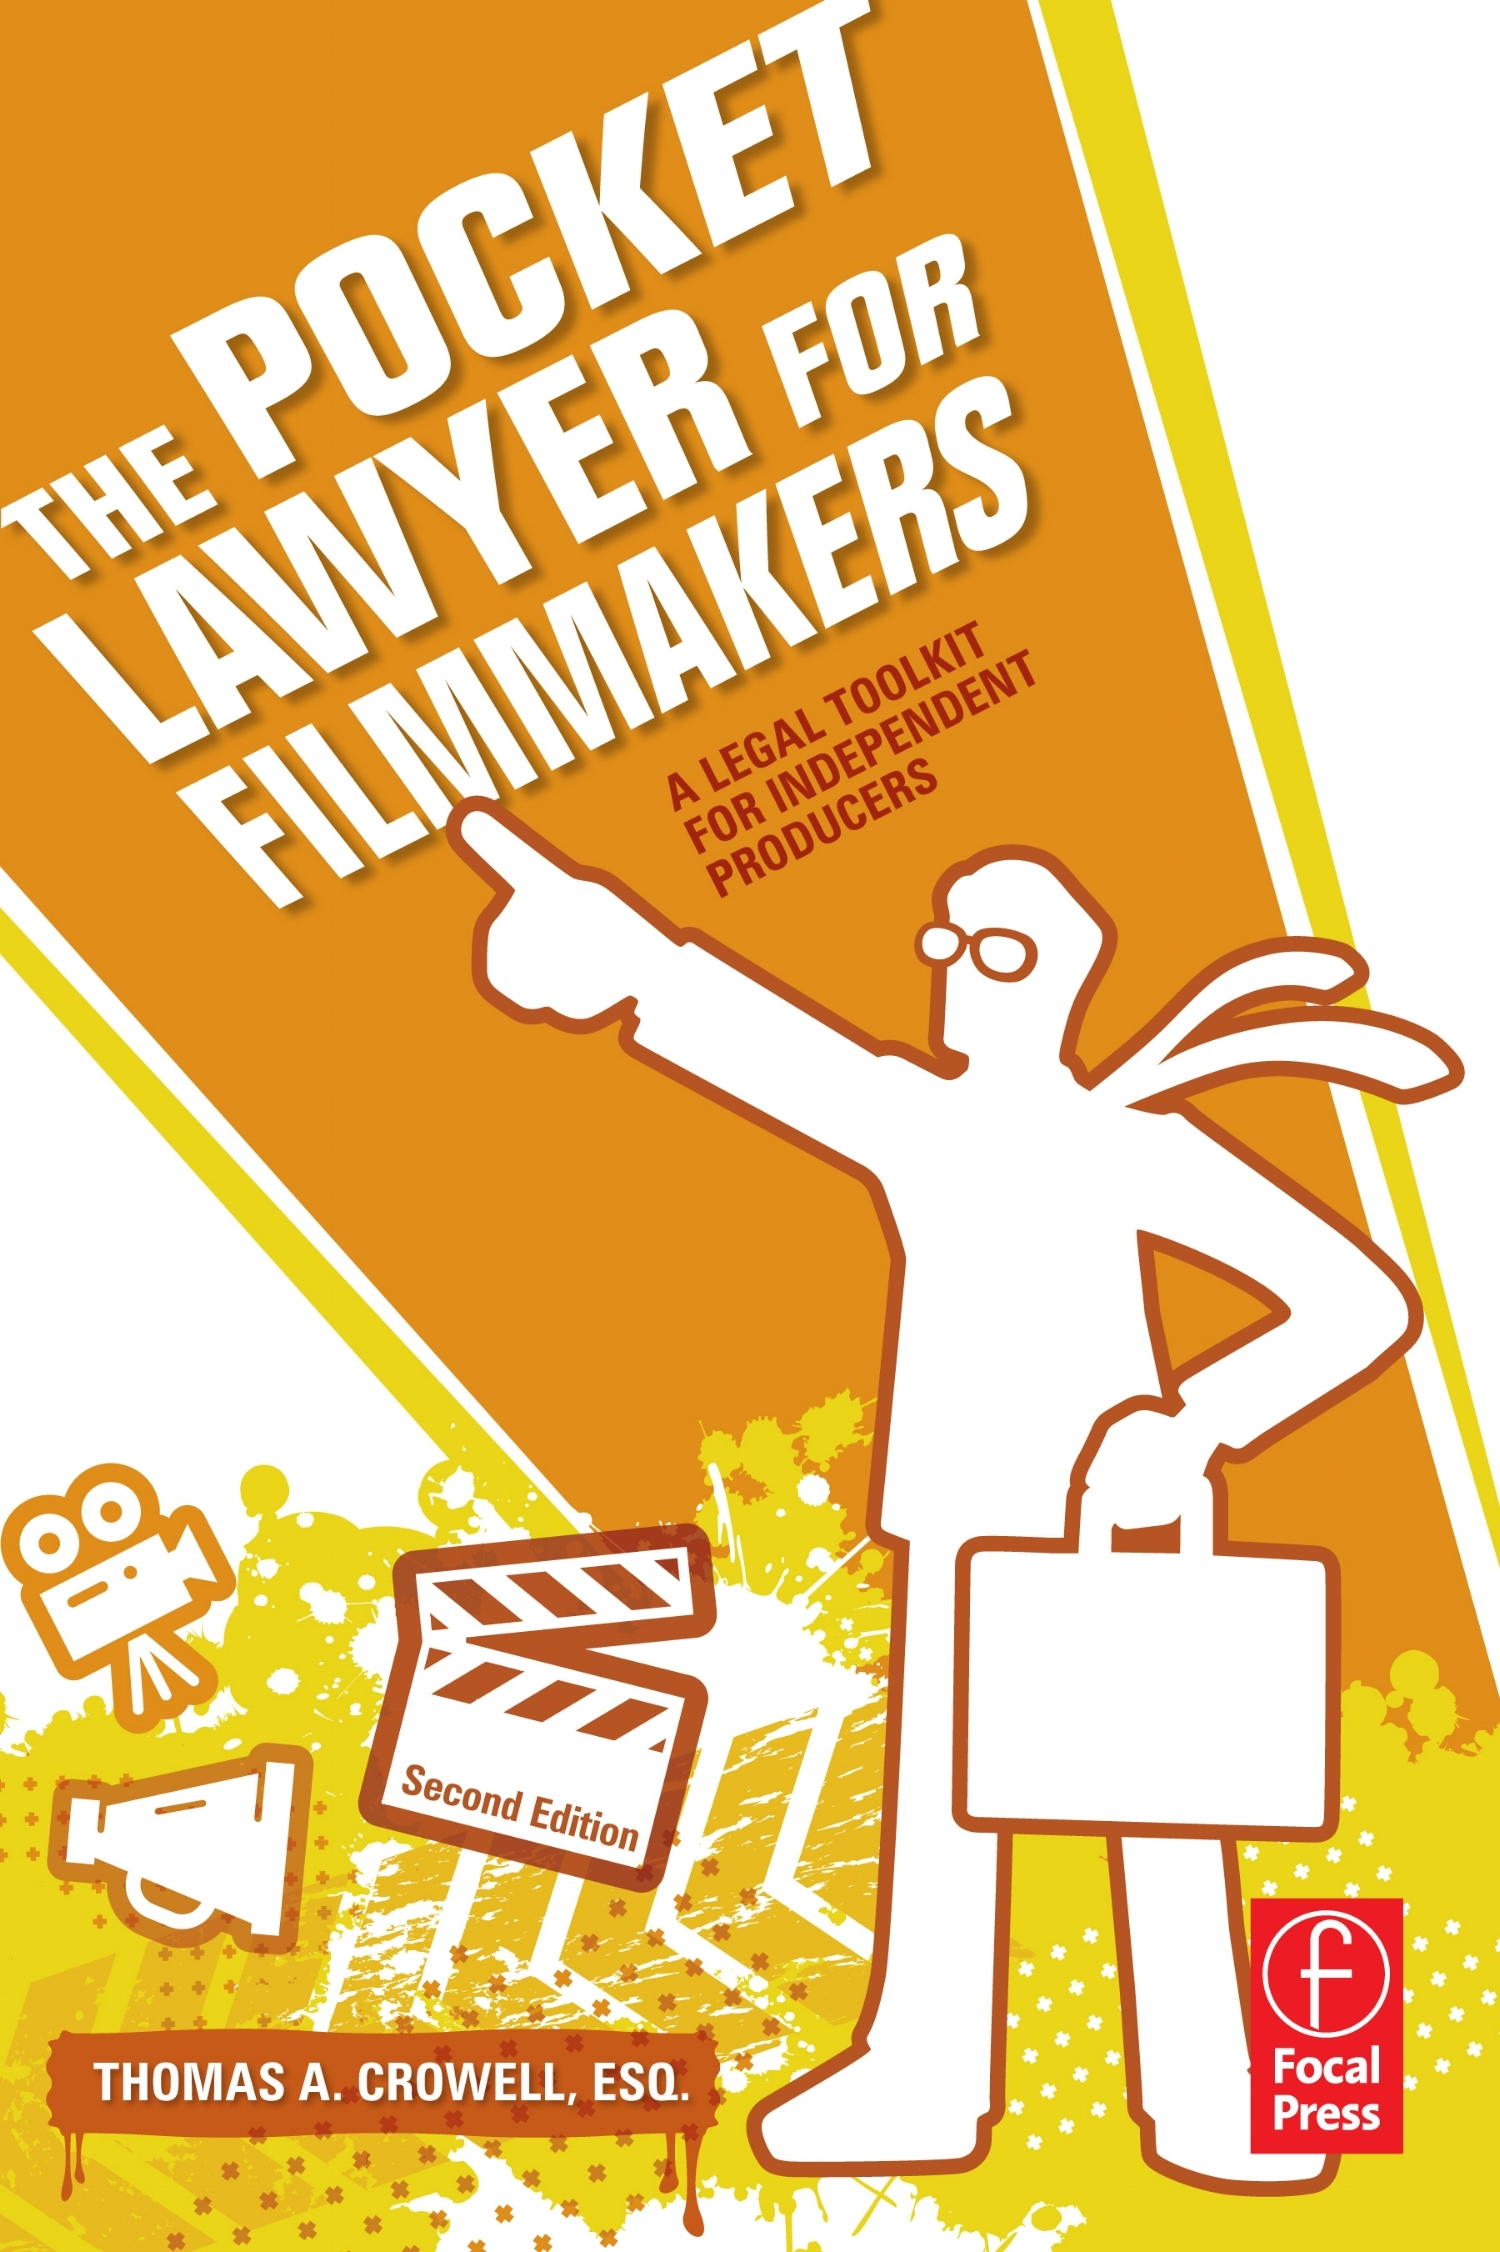 The Pocket Lawyer for Filmmakers - This no-nonsense reference provides fast answers in plain English with no law degree required! It is designed to help you reduce legal costs by providing the vital information you need to make informed decisions on the legal aspects of your film, video, and TV productions.Actors get hurt, copyrights are infringed, and contracts are broken. Big-budget producers have lawyers on retainer, but as an independent filmmaker, you are left legally exposed. Arm yourself with the practical advice of a TV-producer-turned-entertainment-lawyer.